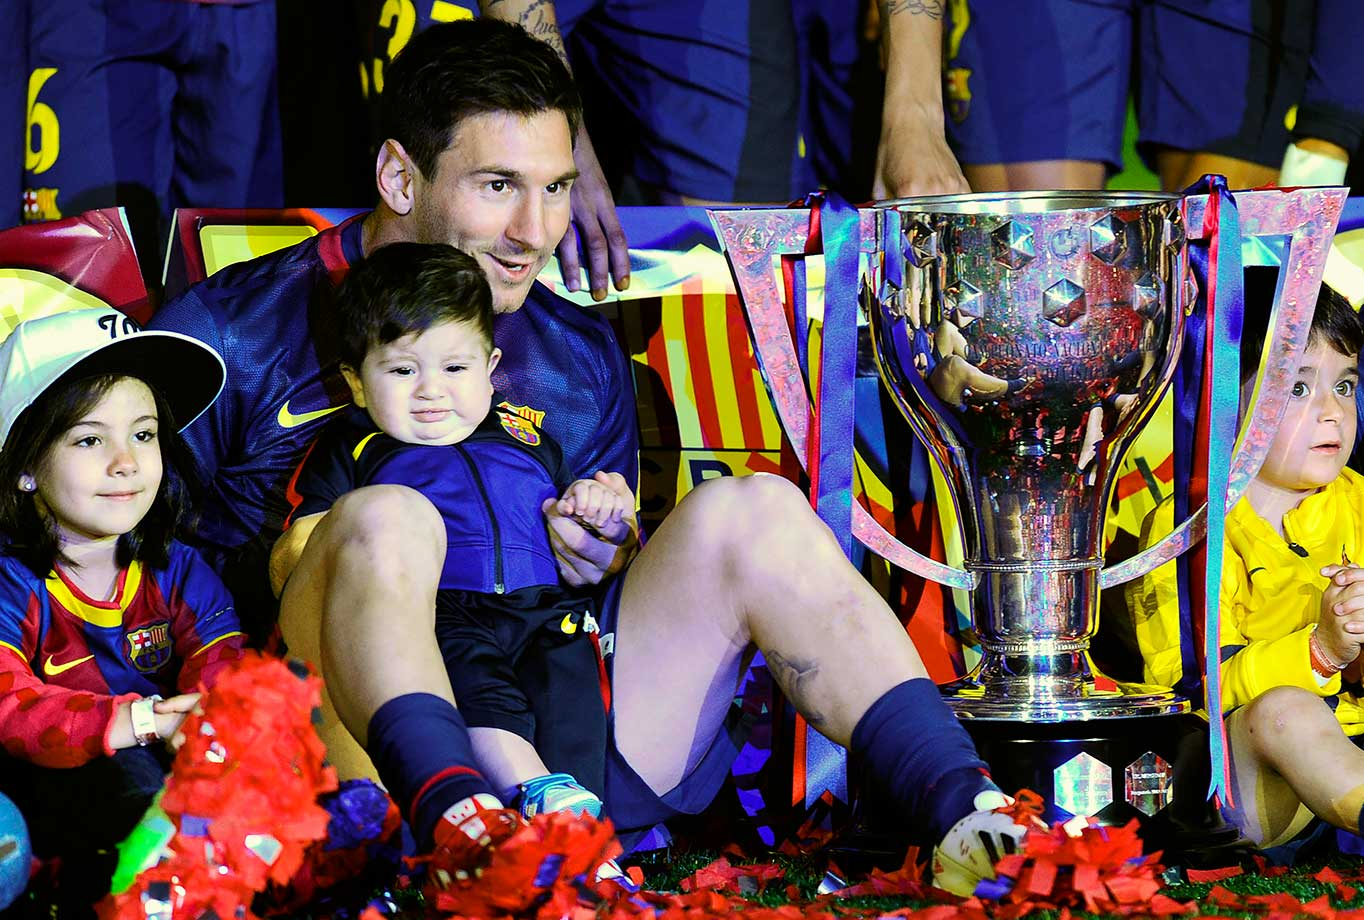 Barcelona's Lionel Messi holds his son Thiago as they sit next to the trophy after winning the La Liga match against Real Valladolid on May 19, 2013 at Camp Nou stadium in Barcelona, Spain.